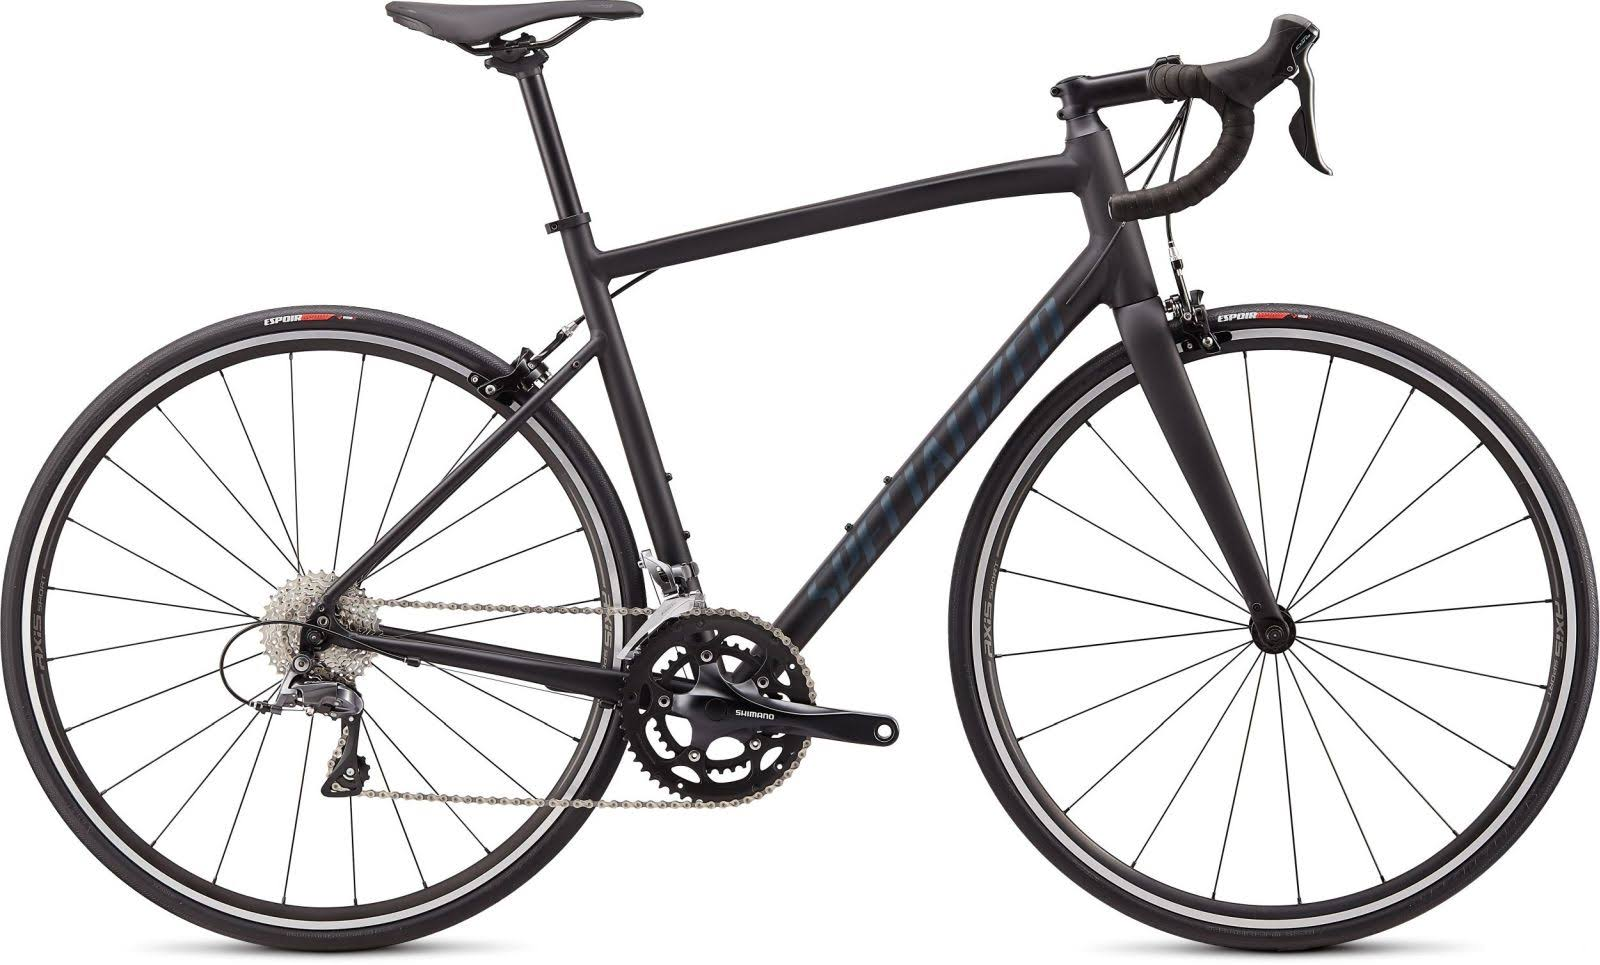 Specialized Allez 2020 Road Bike - Black/Cast Battleship